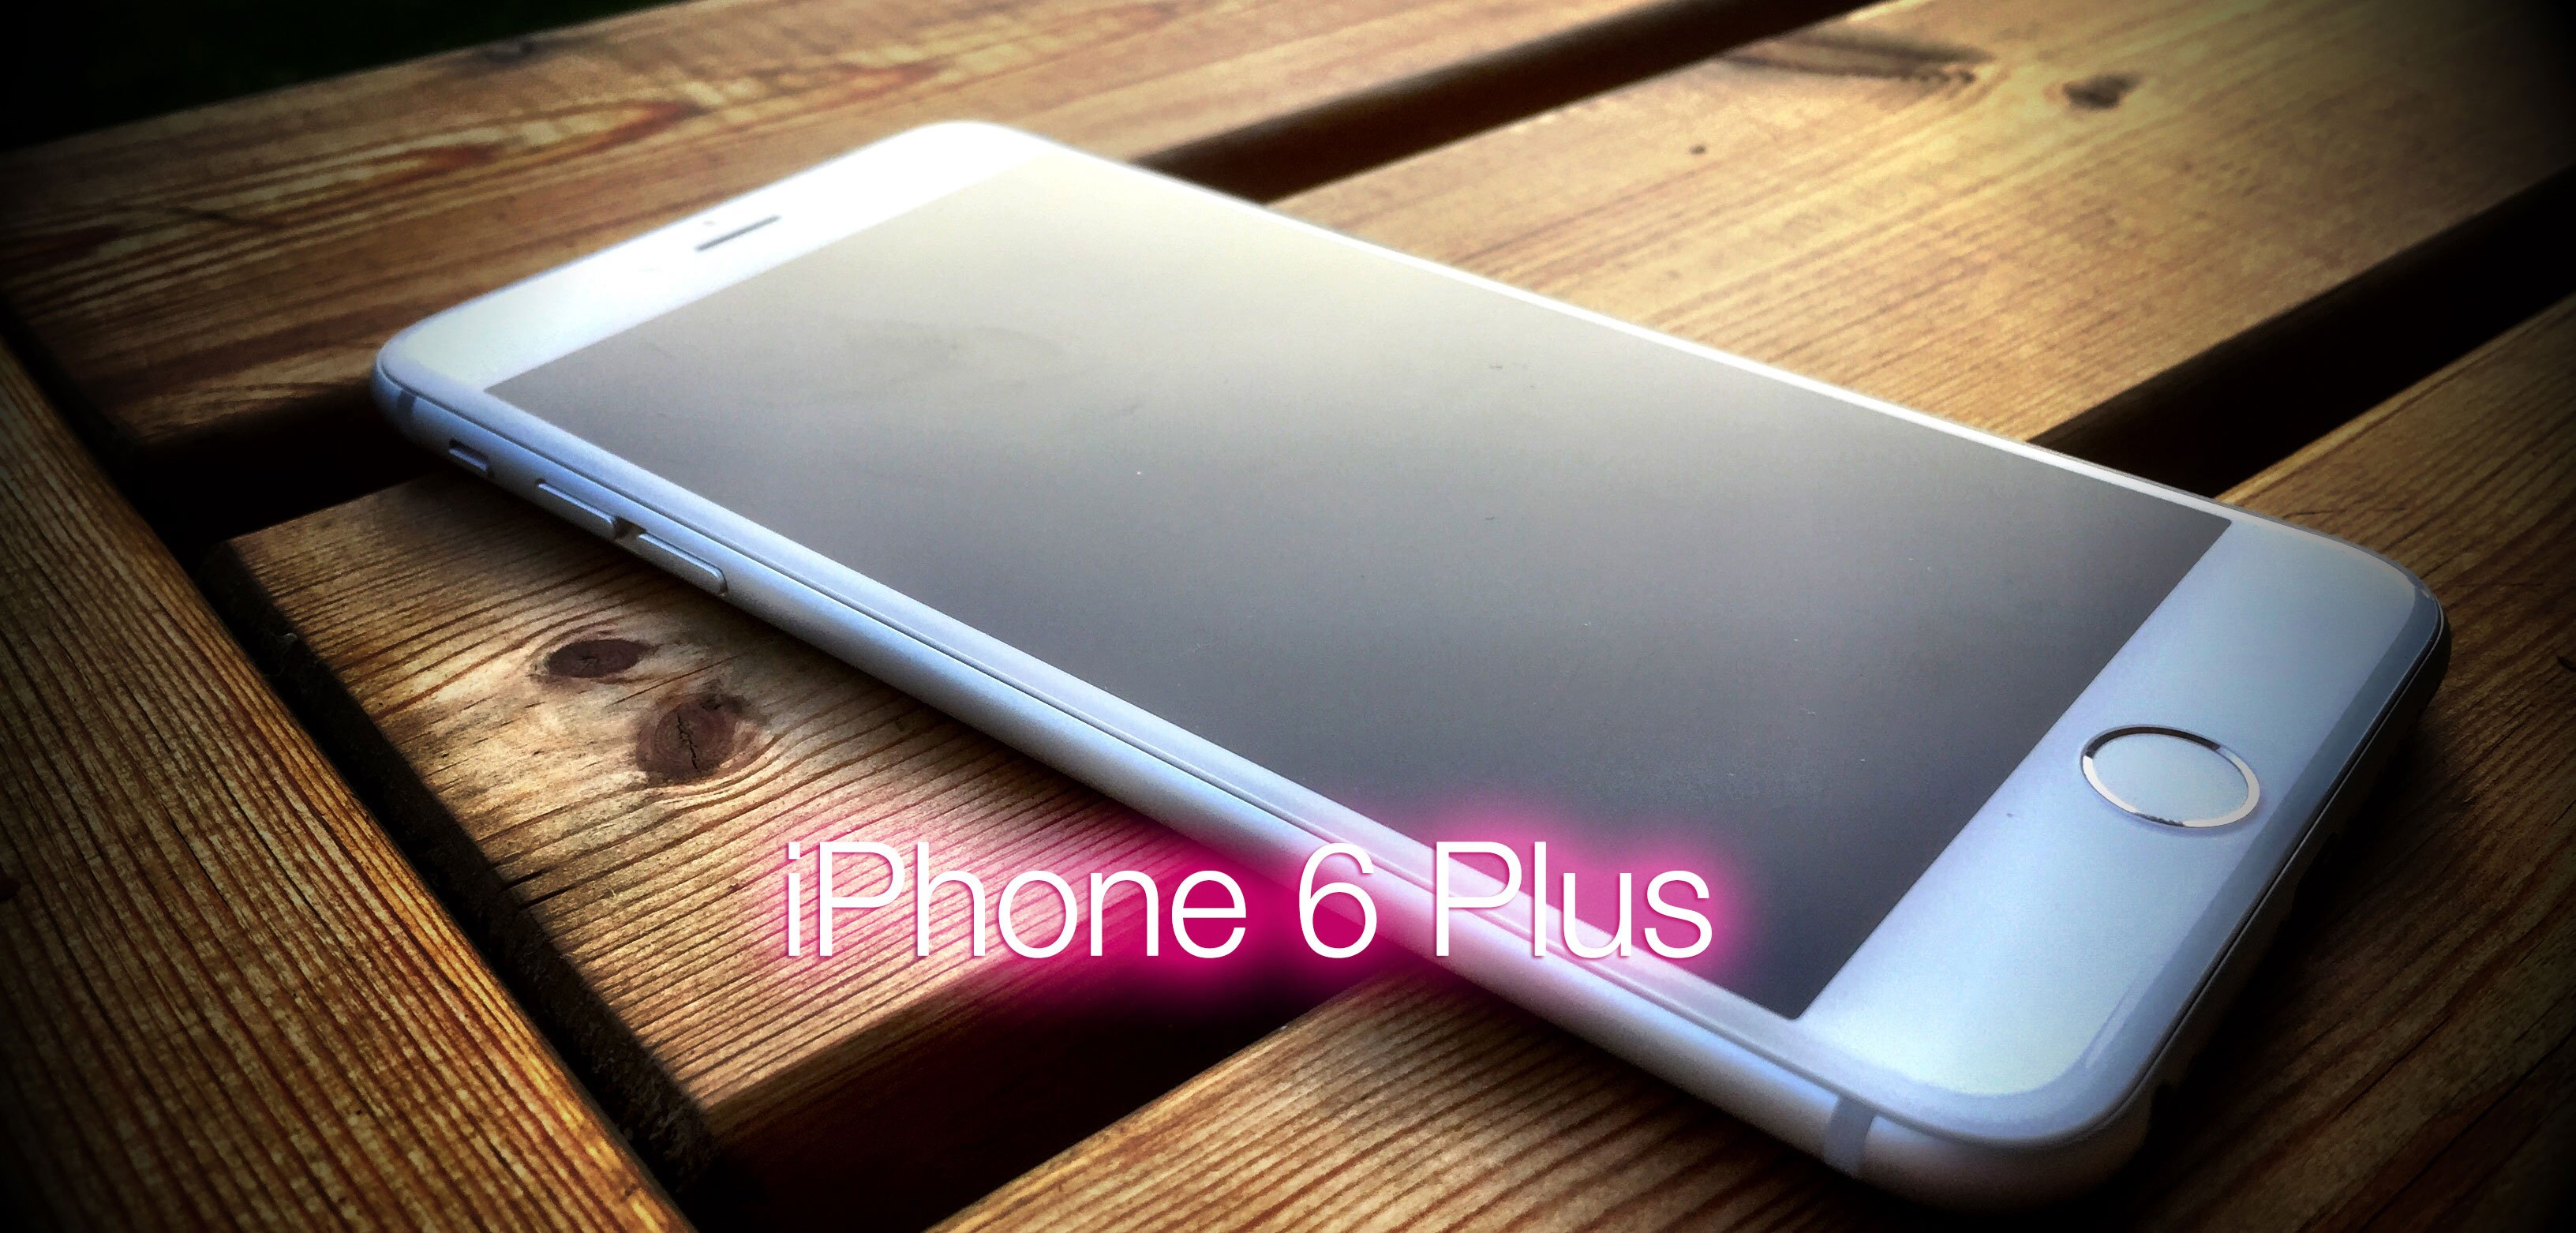 iPhone 6 Plus – OIP: Probleme durch Accessoires mit Magnet/Metall? 11